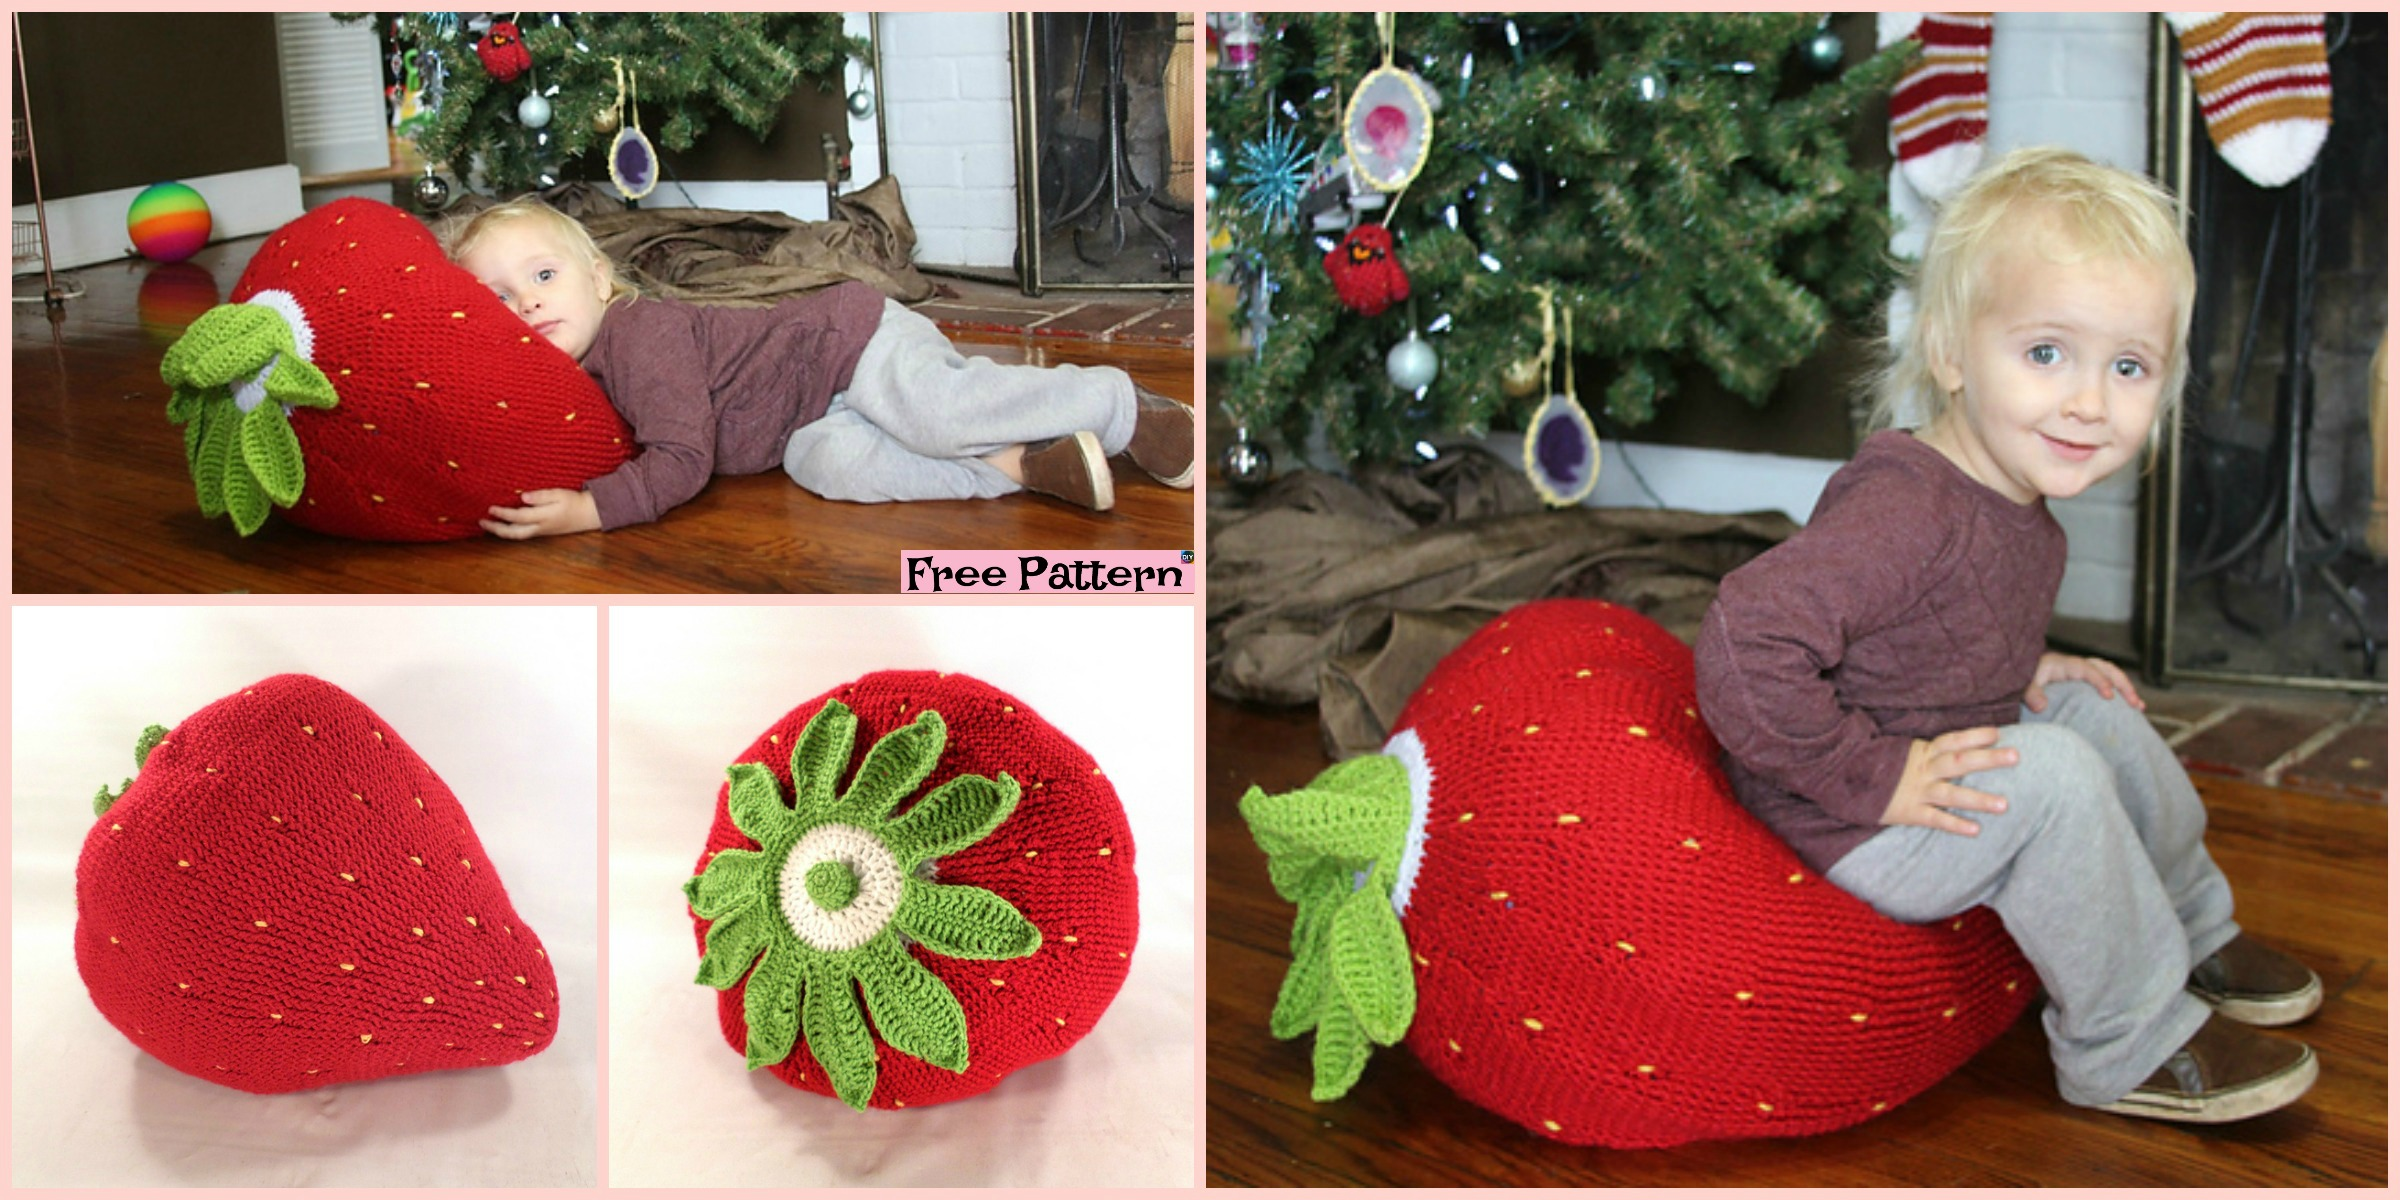 Crochet Giant Strawberry Pillow – Free Pattern